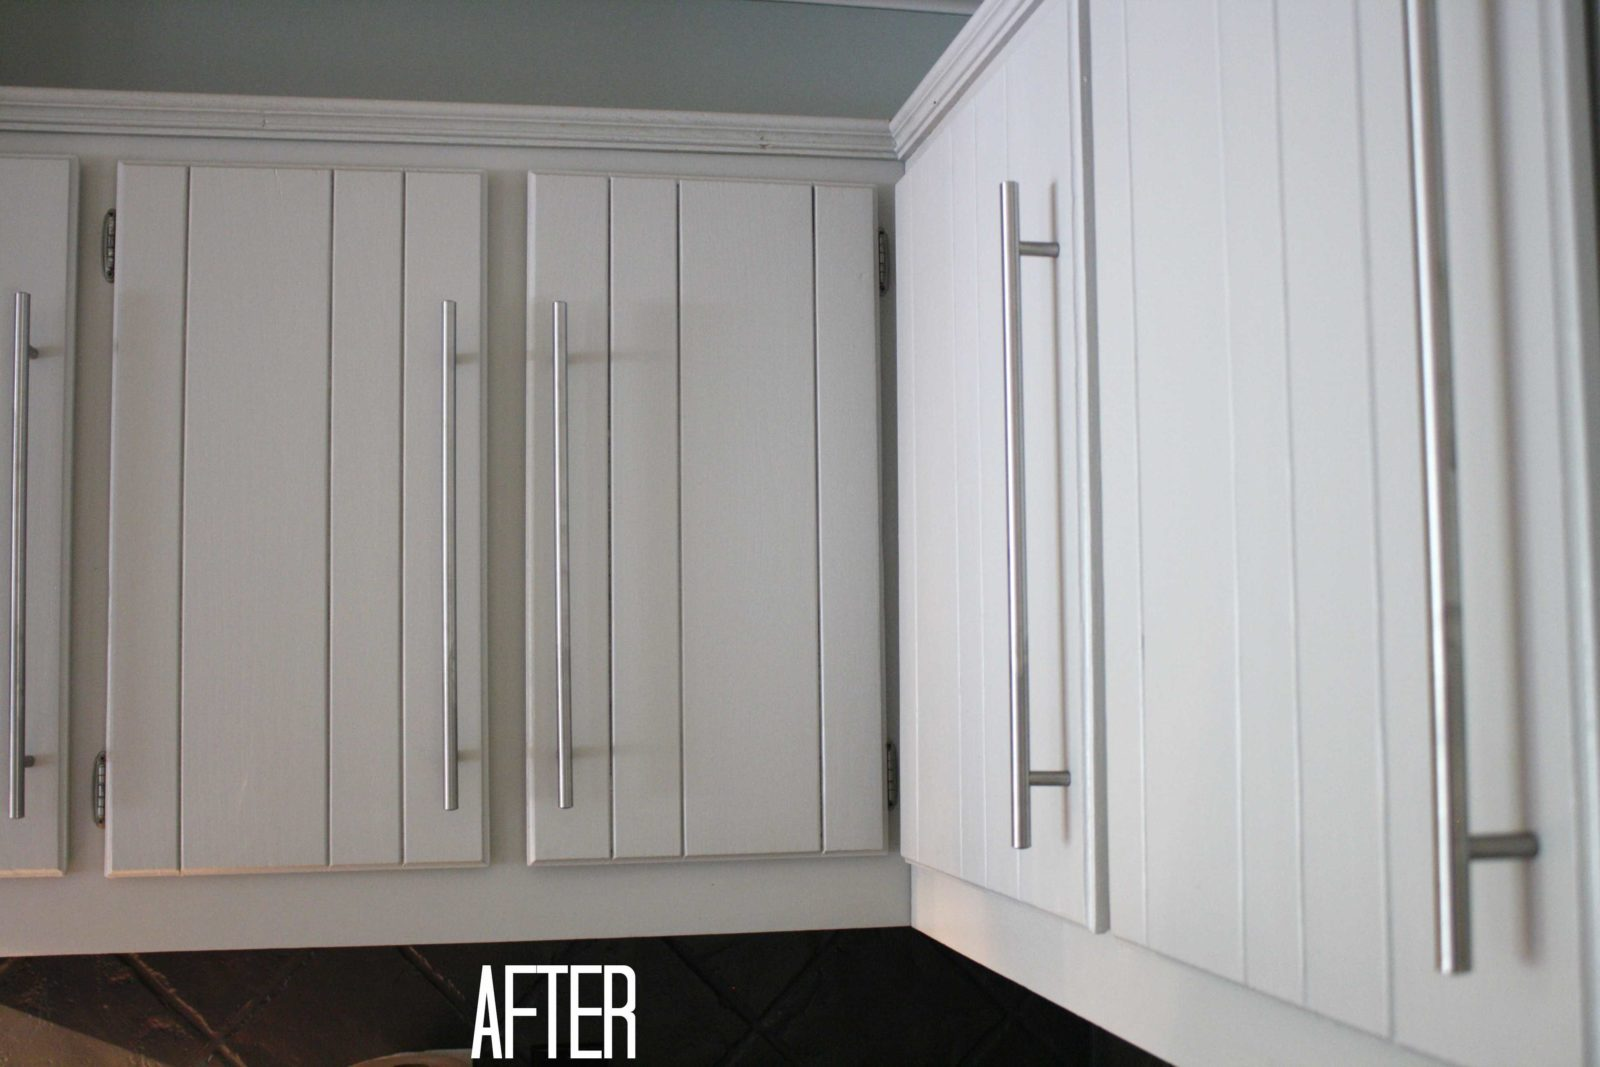 Learn To Paint Your Kitchen Cabinets Without Losing Your Mind! Full  Tutorial By Designer Trapped